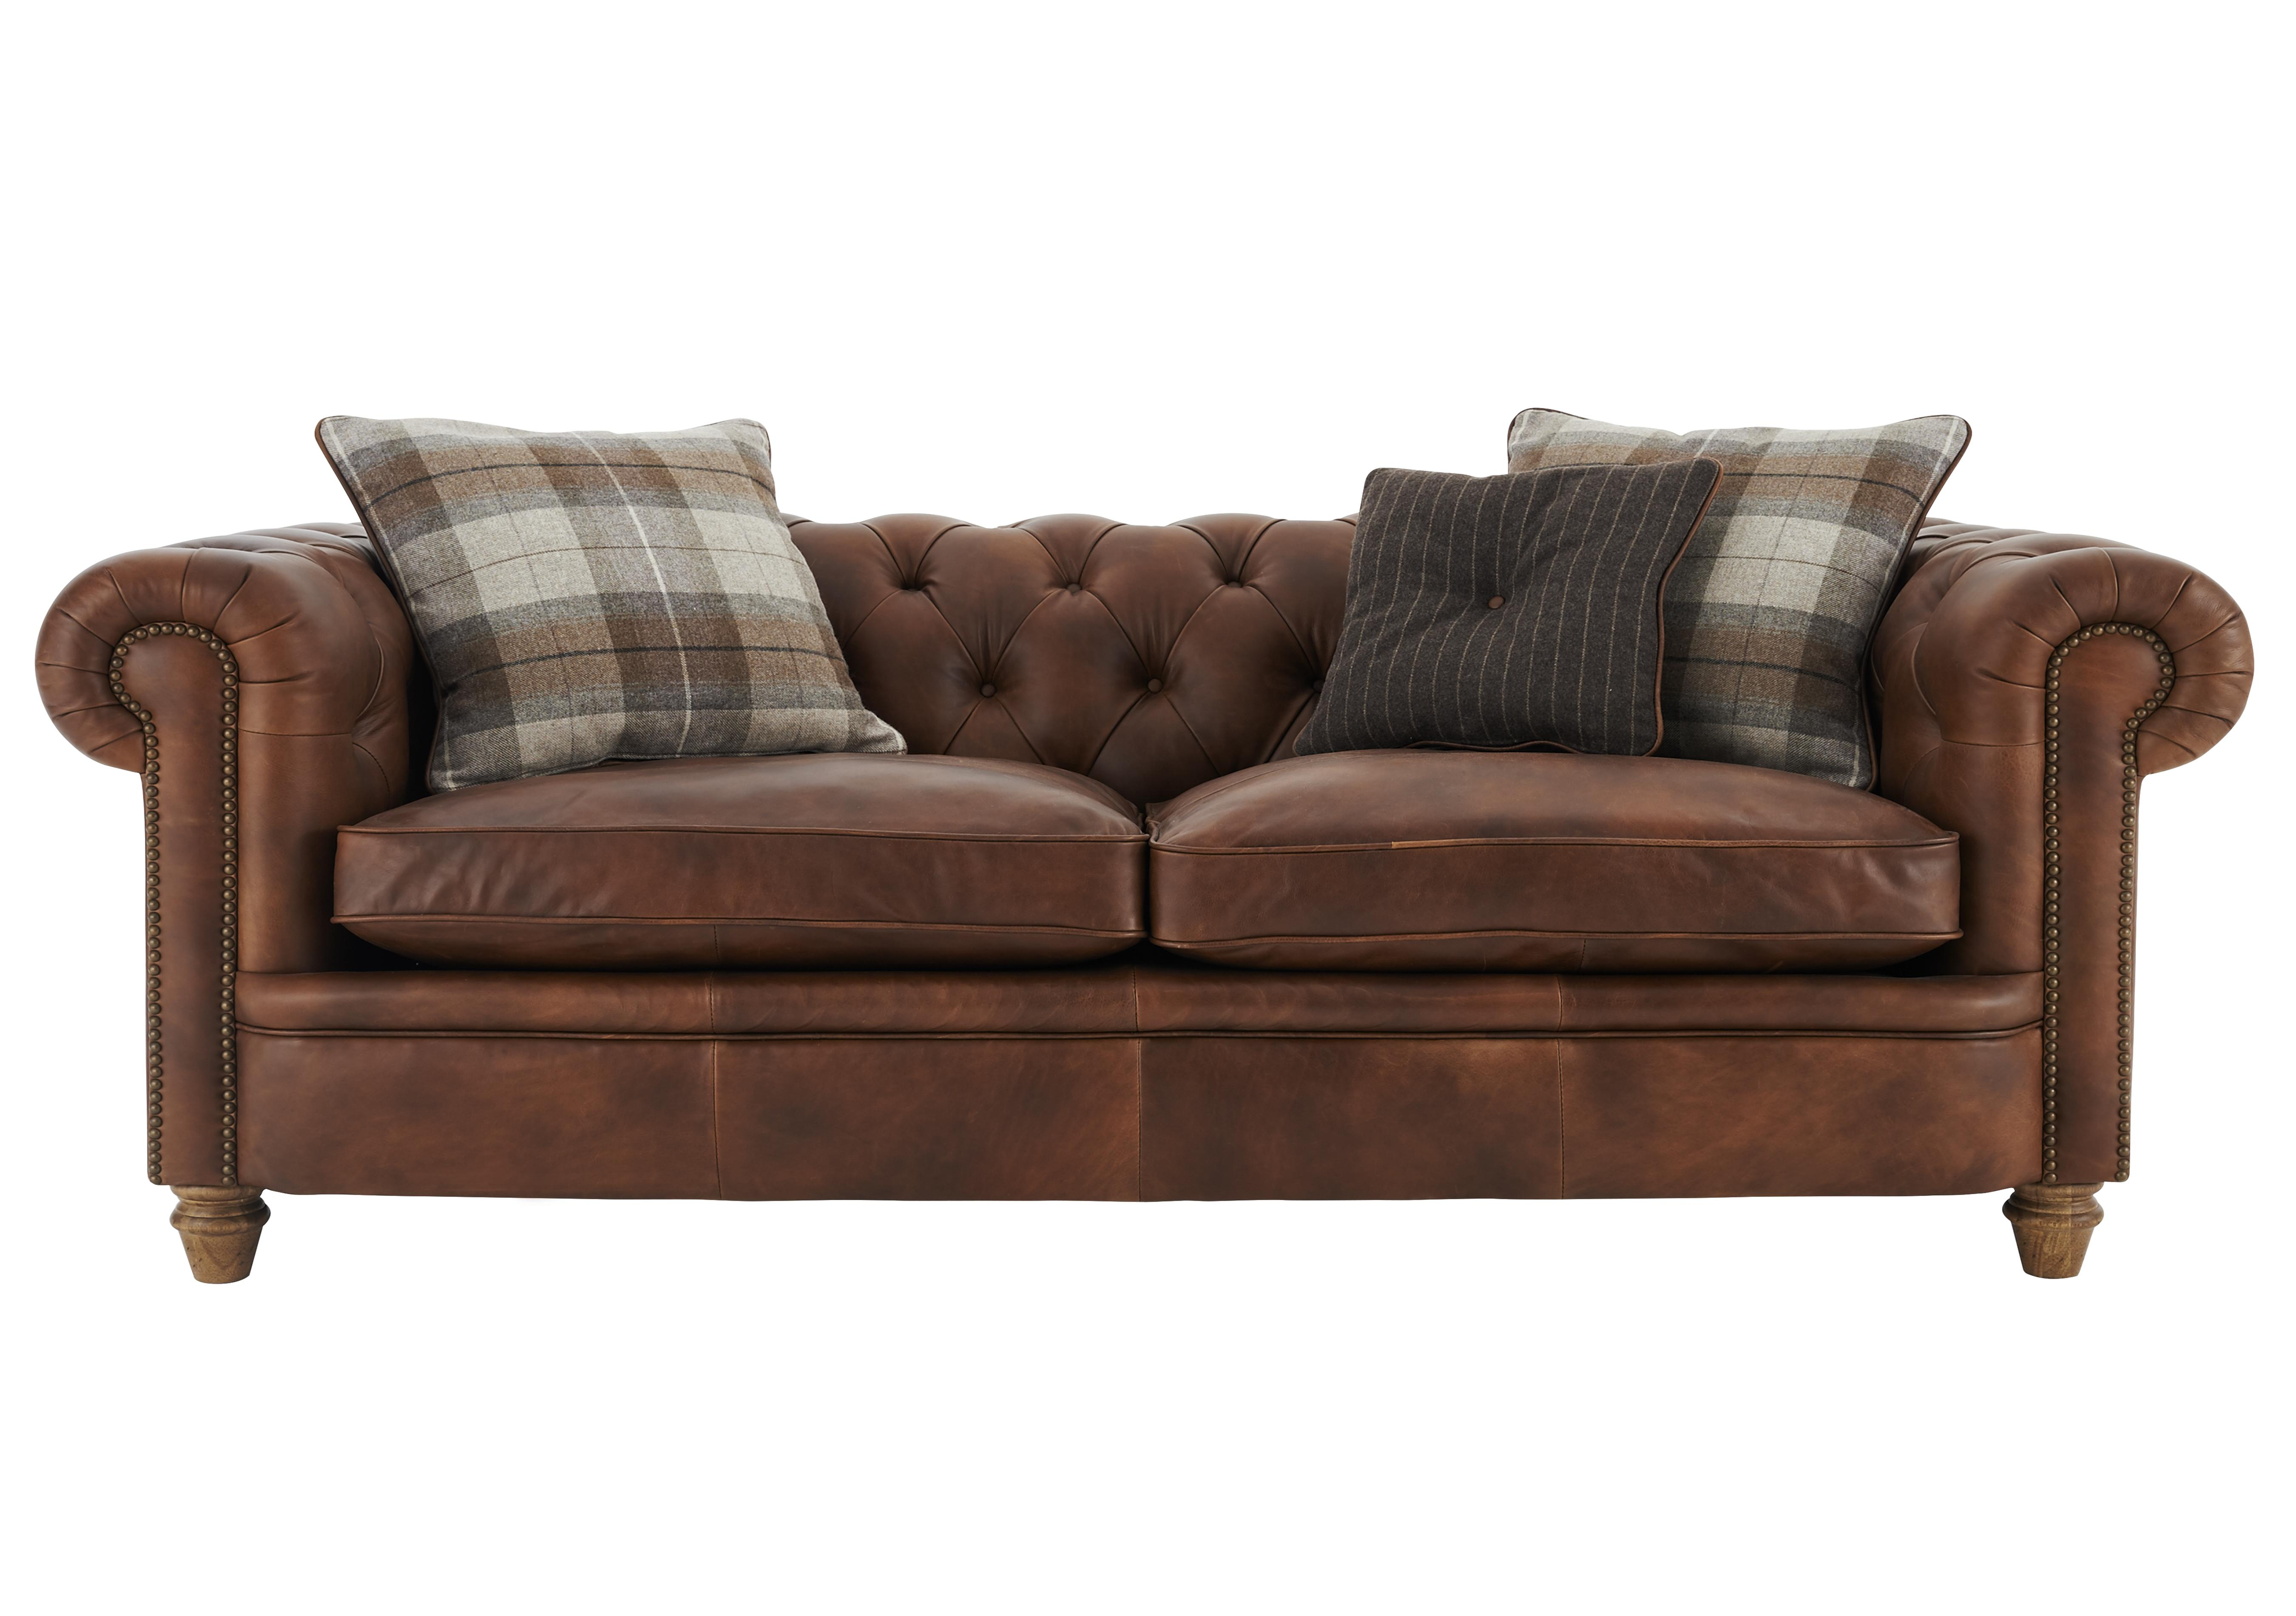 Alexander And James New England Newport 4 Seater Leather Sofa